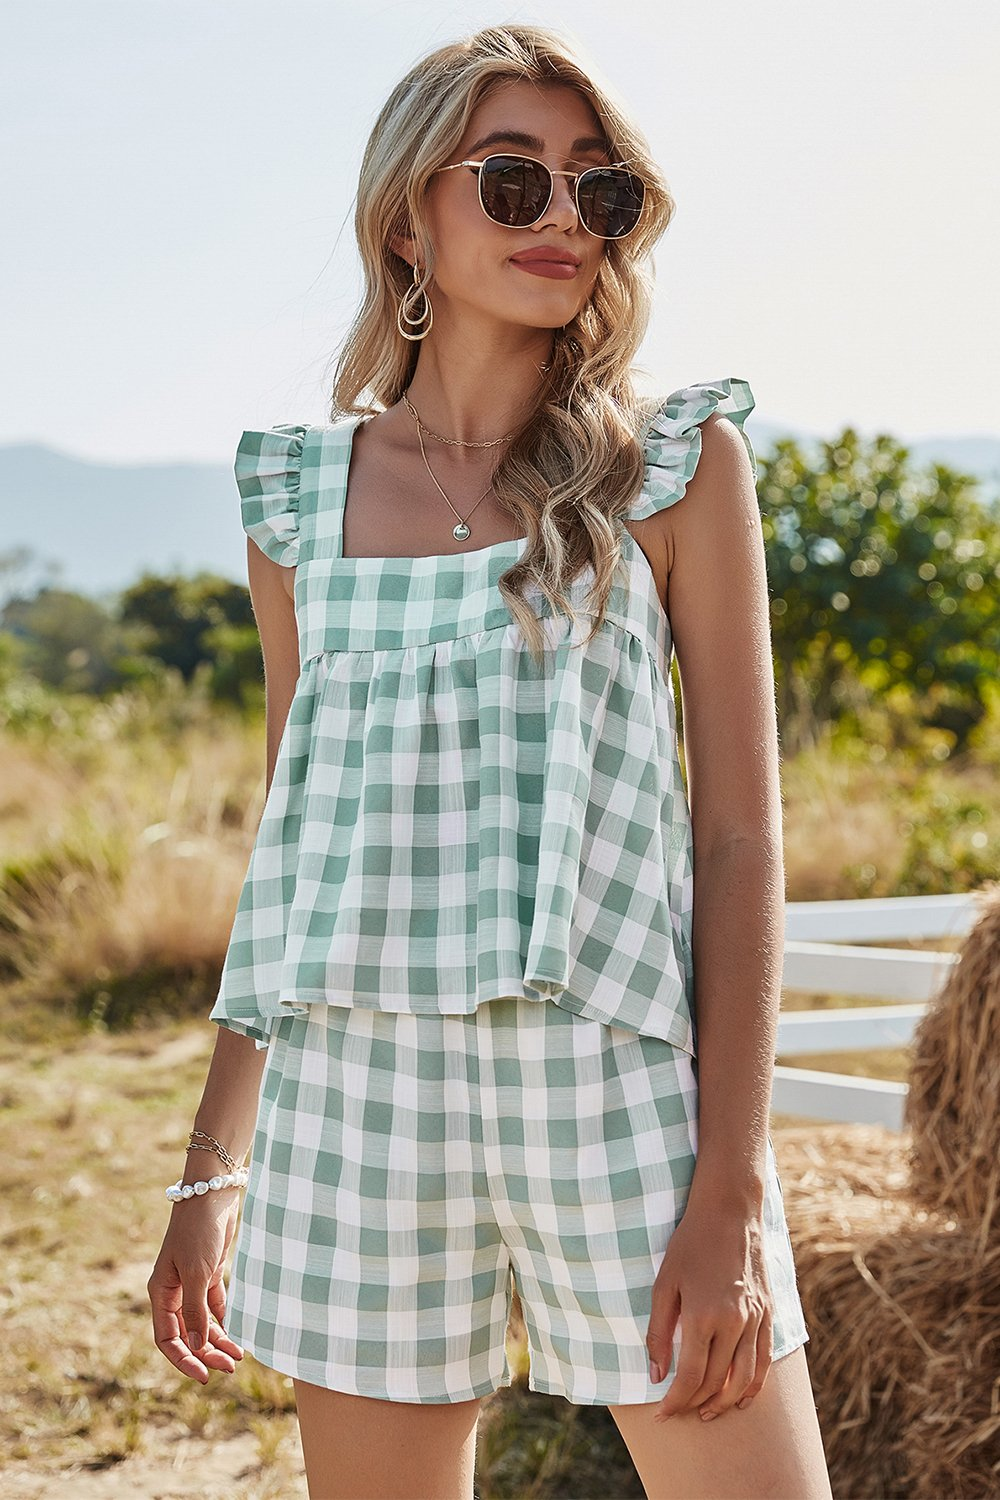 Plaid Eckiger Hals Sommer Top & Kurz